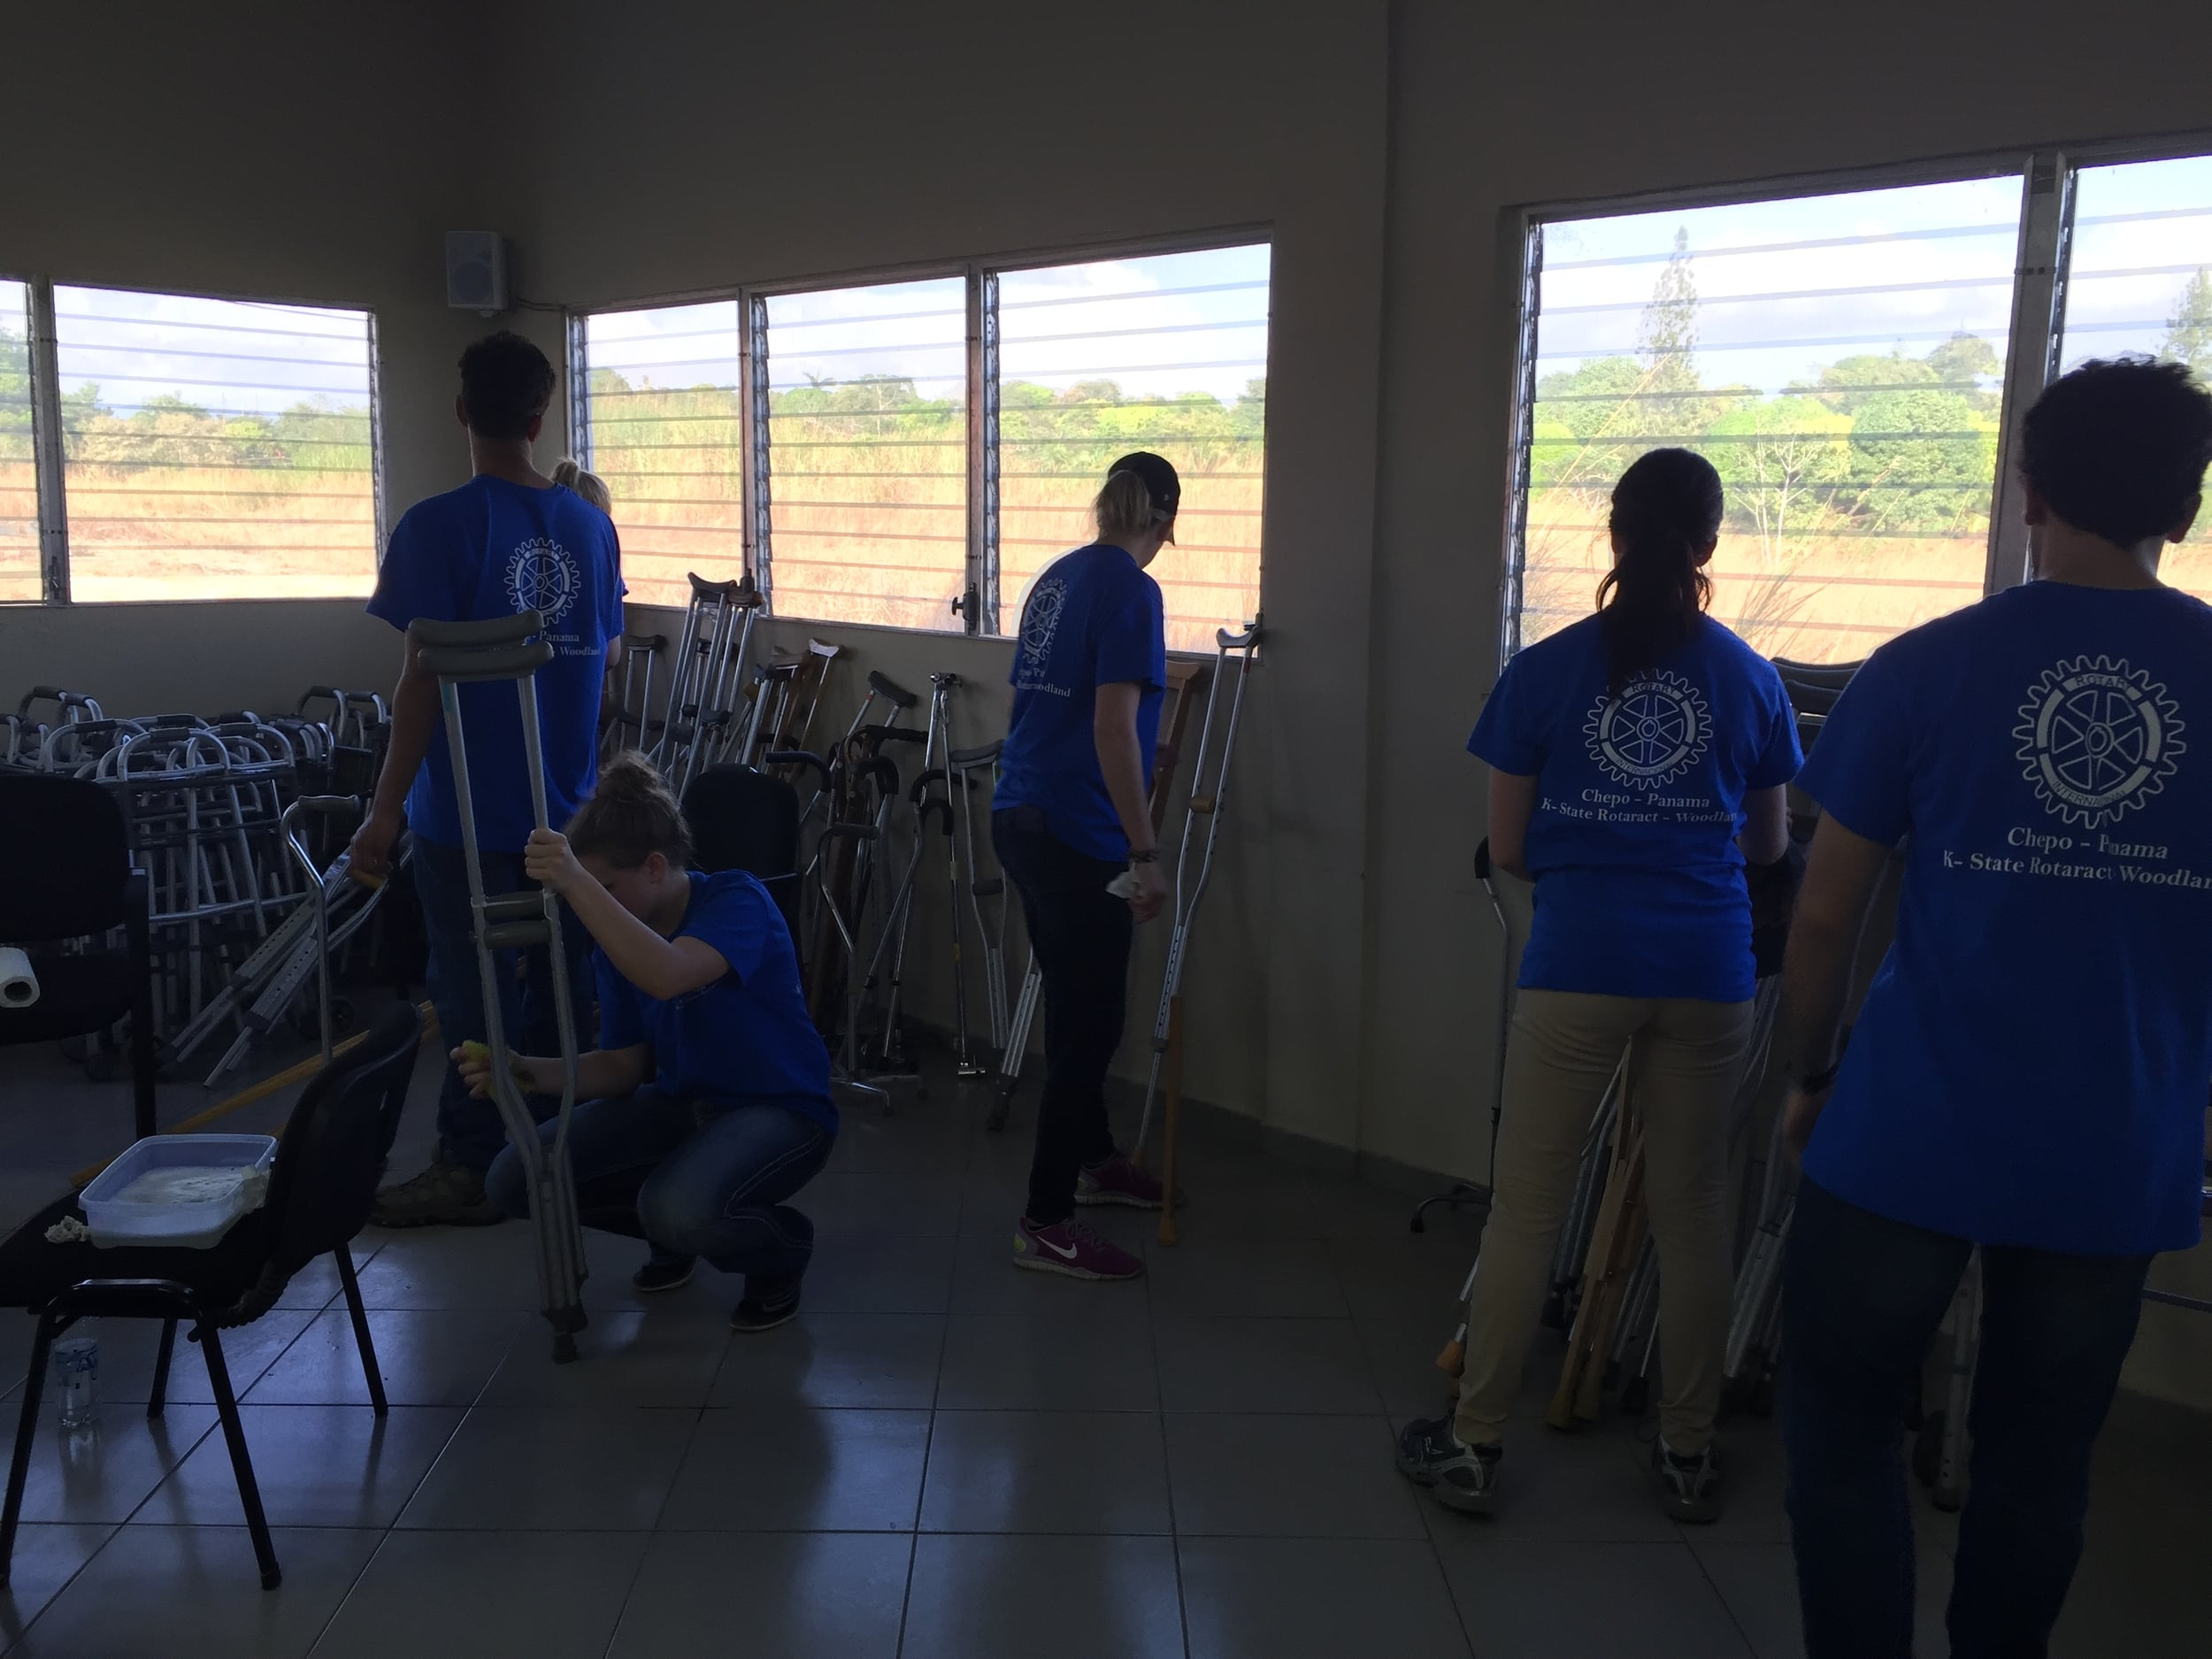 Gathering and washing crutches, walkers and canes to deliver the next day.